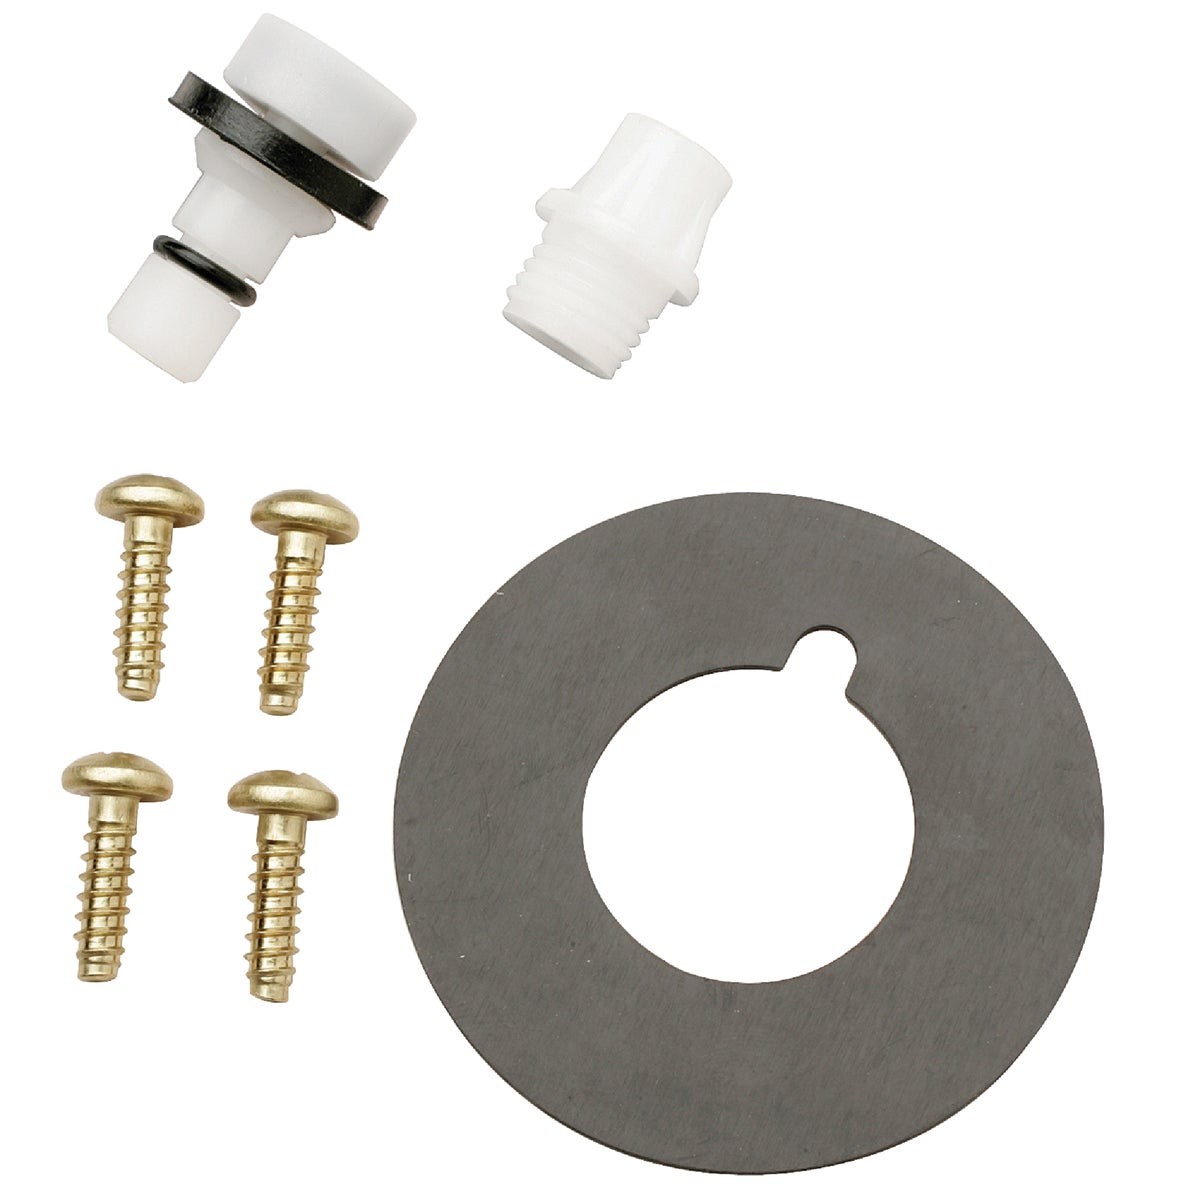 FILL VALVE REPAIR KIT - 450669 by Plumb Pak/keeney Mfg